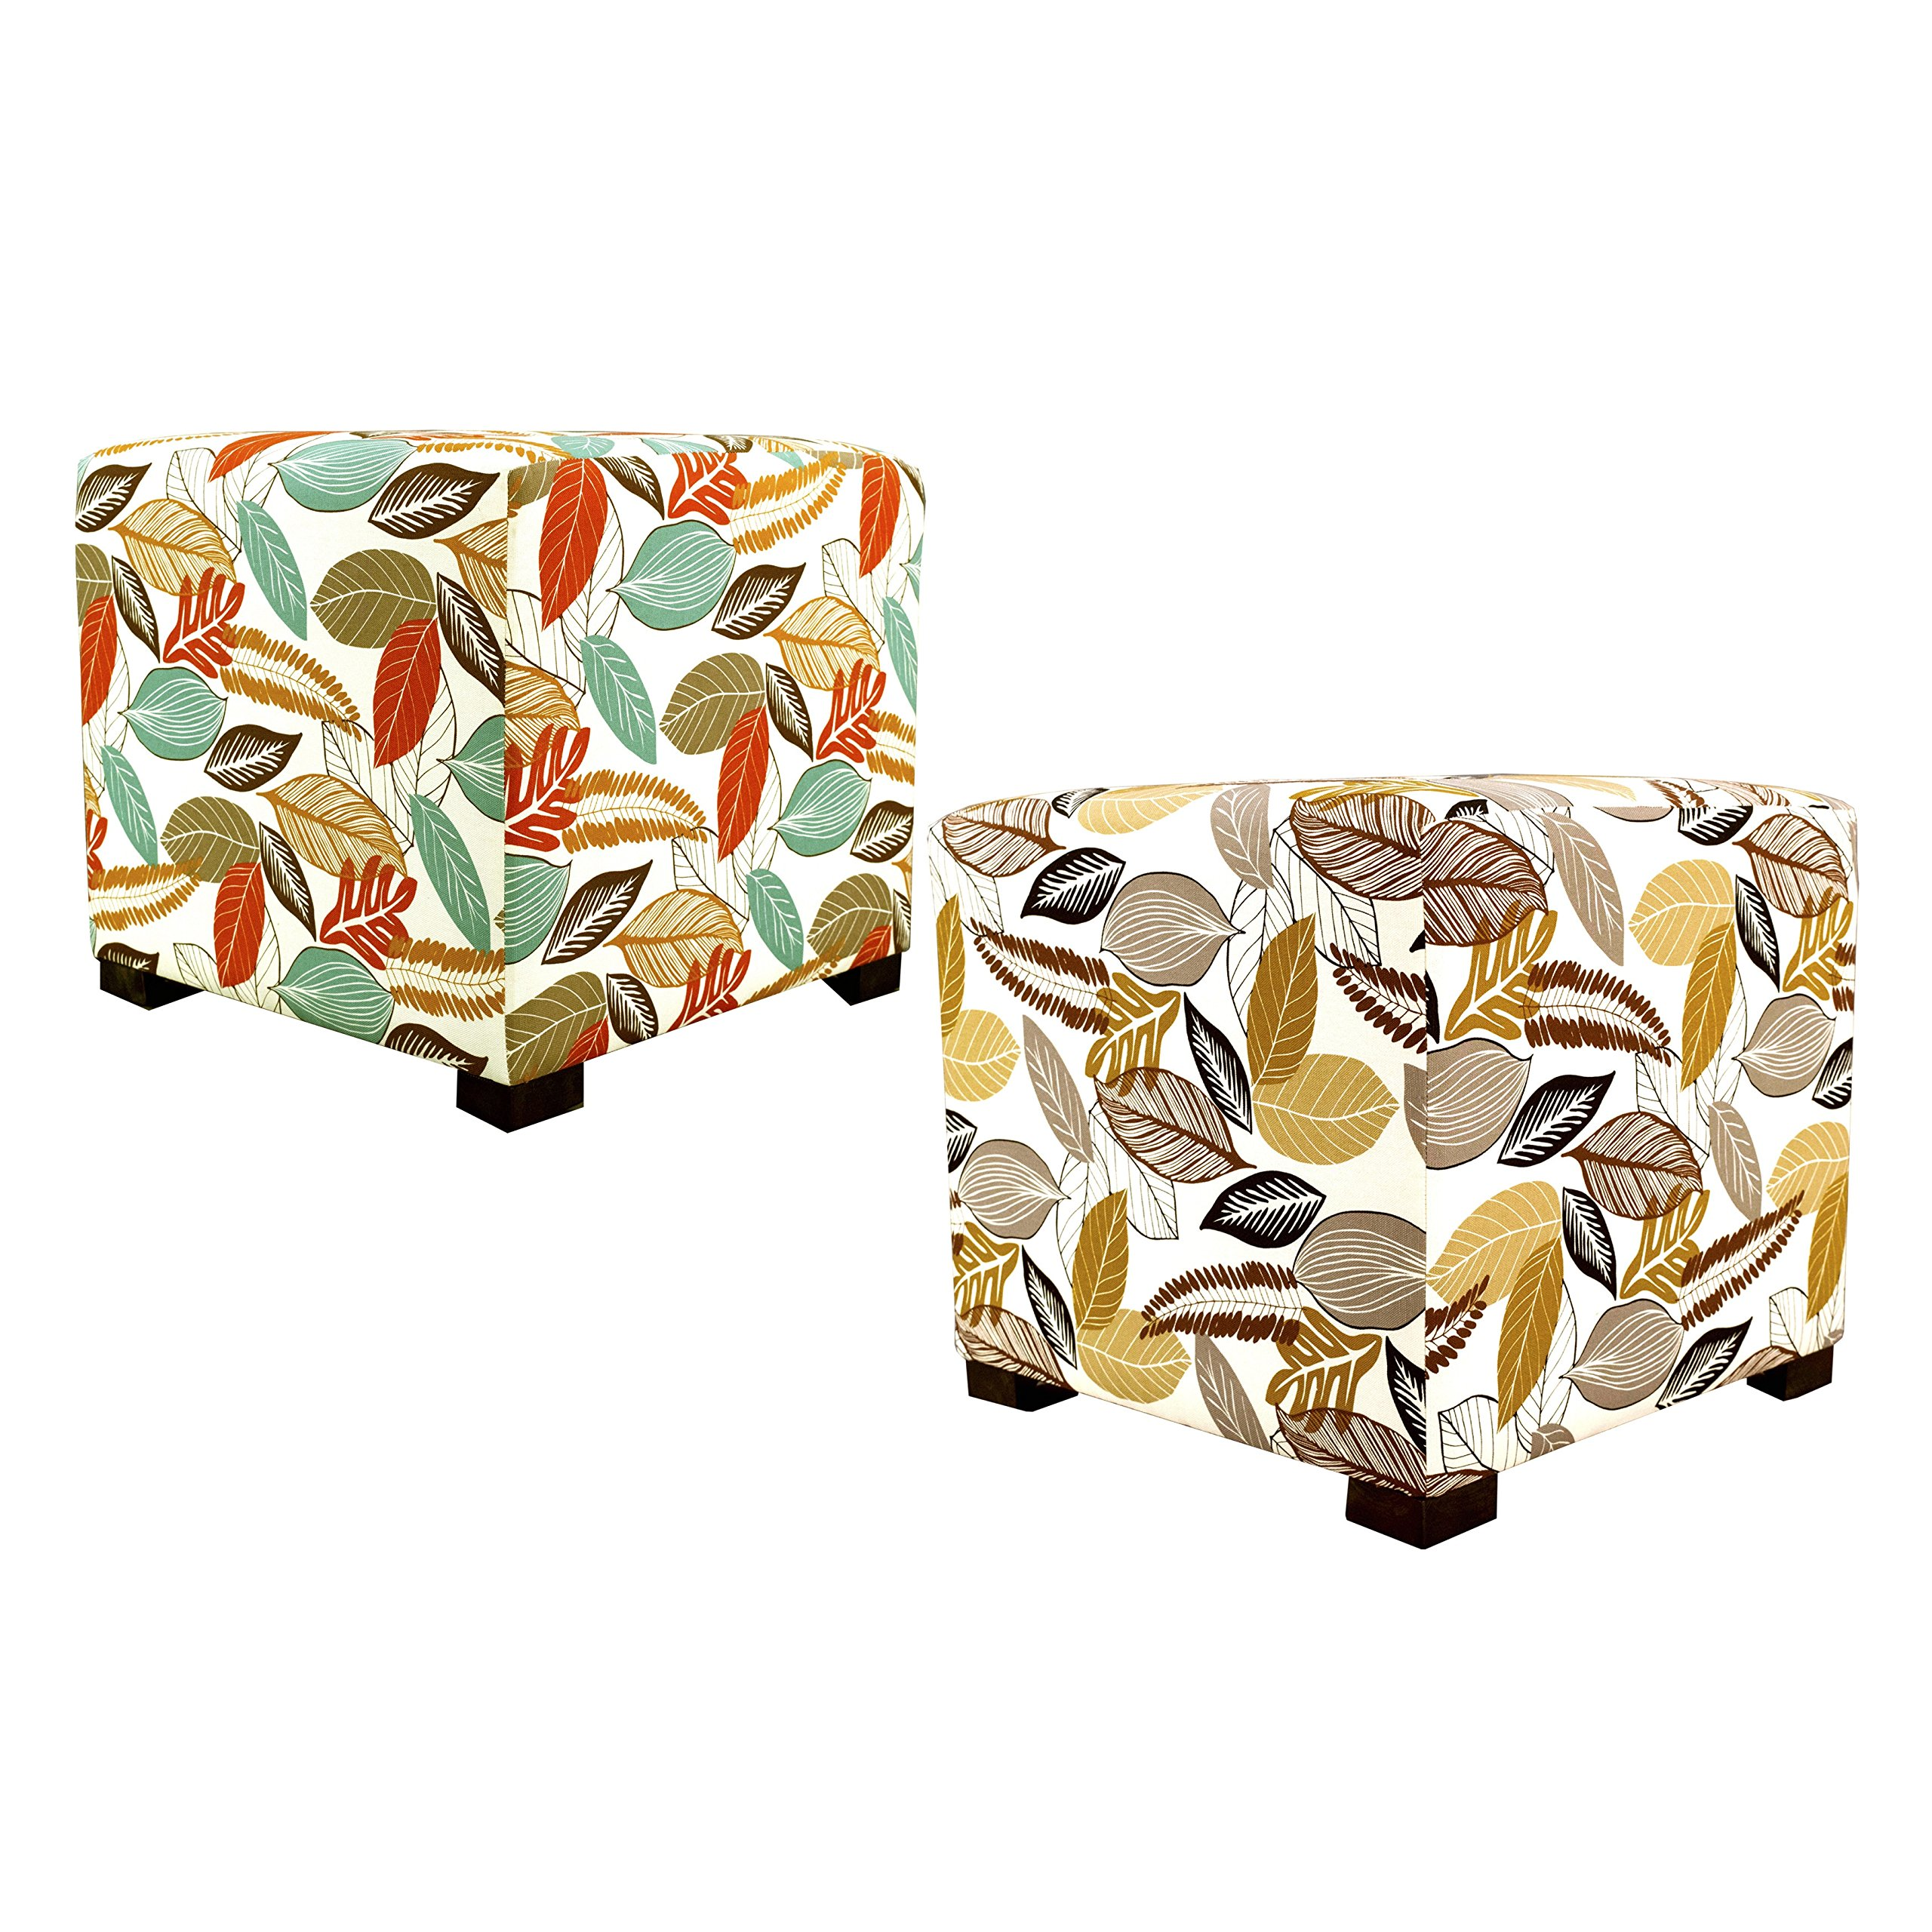 MJL Furniture Designs Merton Collection, Fabric Upholstered Modern Cube Foot Rest Ottoman with 4 Button Tufting, Floral Foliage Series, Driftwood by MJL Furniture Designs (Image #2)